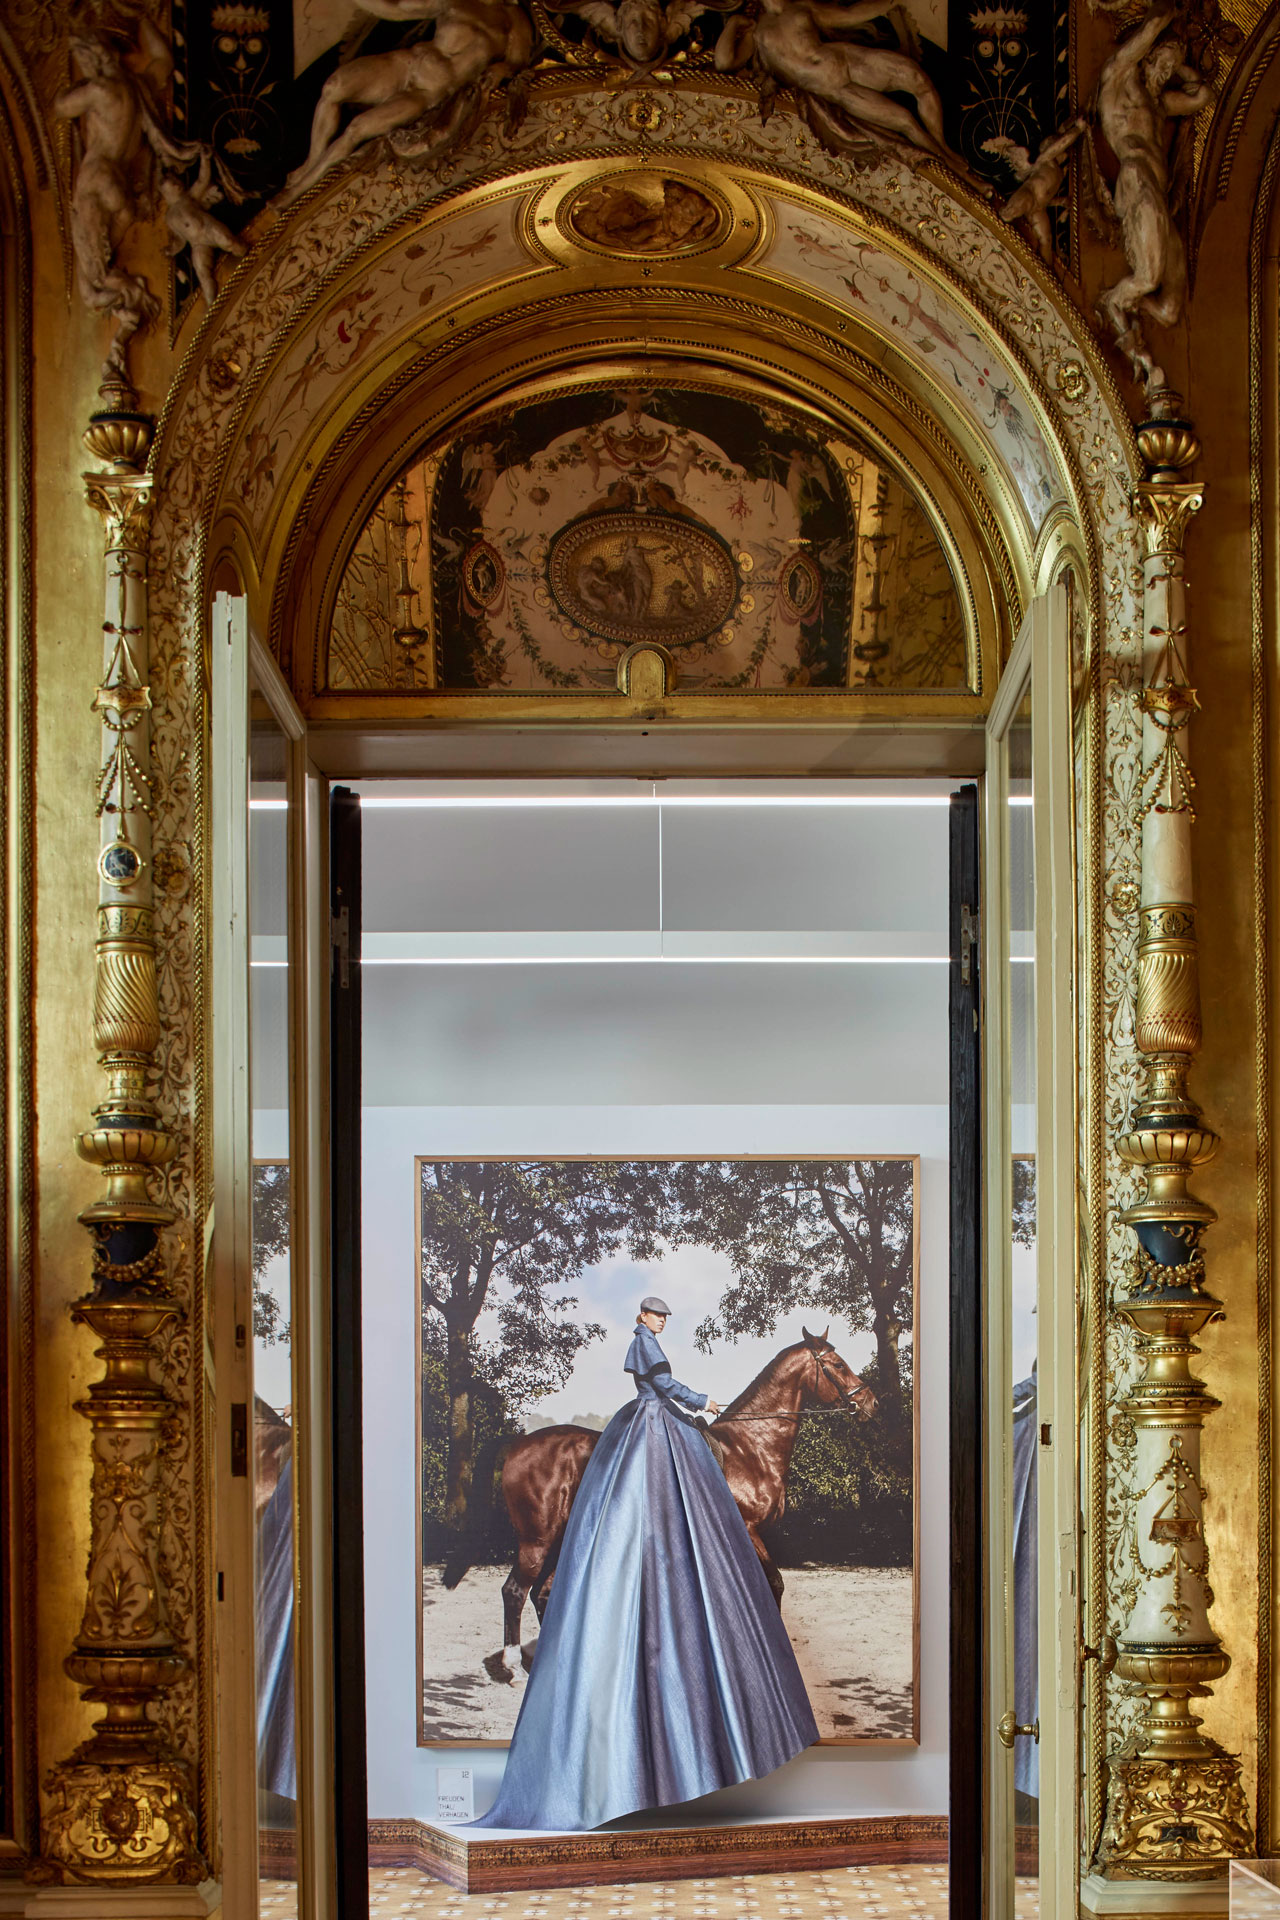 Artwork from the BLUE JEANS series by Freudenthal/Verhagen, a Dutch photography duo based in Amsterdam (Carmen Freudenthal & Elle Verhagen) as seen inside Palazzo Francesco Turati at the 2017 edition of MASTERLY: THE DUTCH IN MILAN exhibition. © Centraal Museum, Utrecht. Photo by Nicole Marnati.